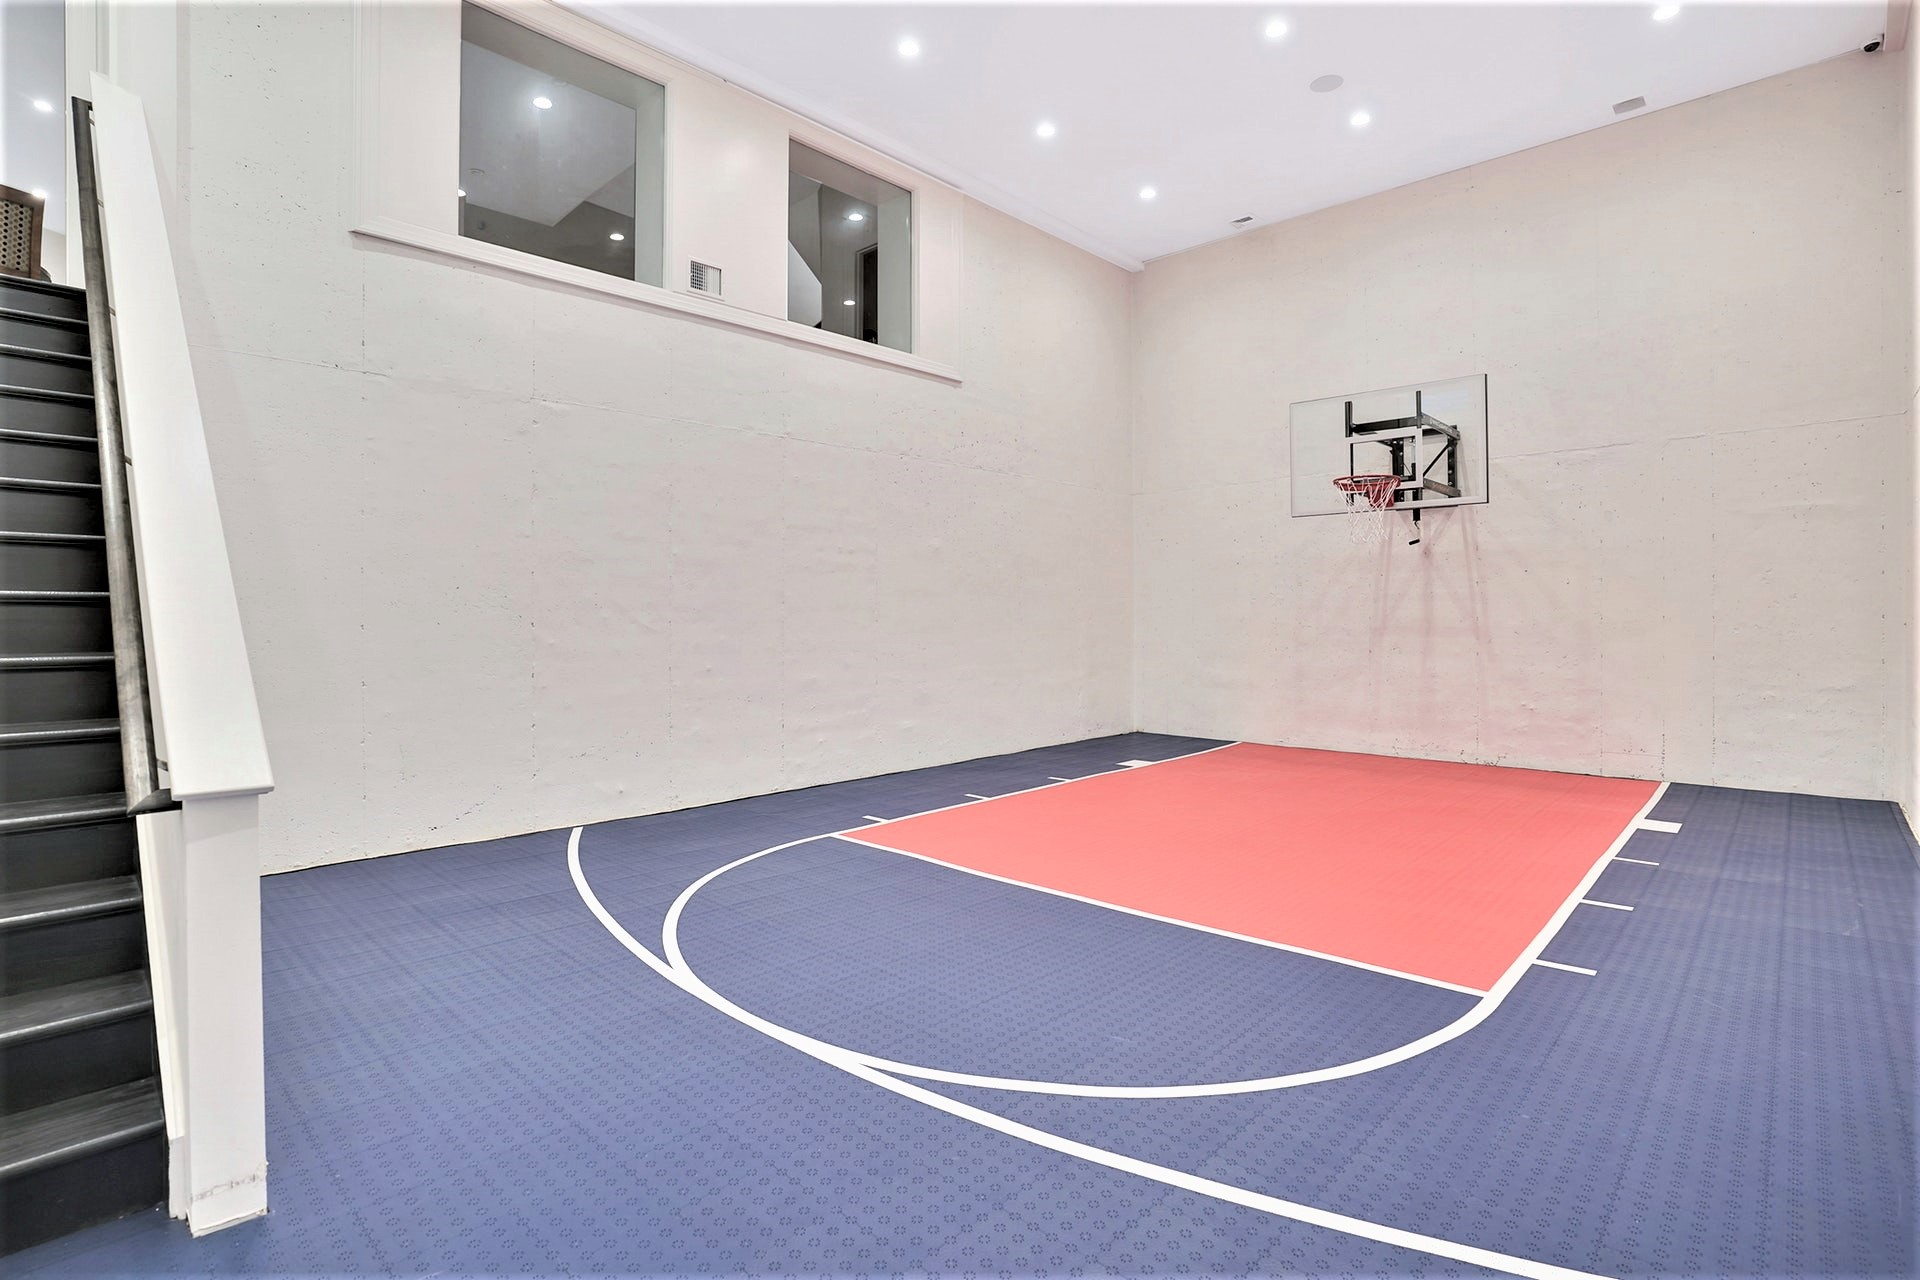 30 Jefferson Avenue Sports Court